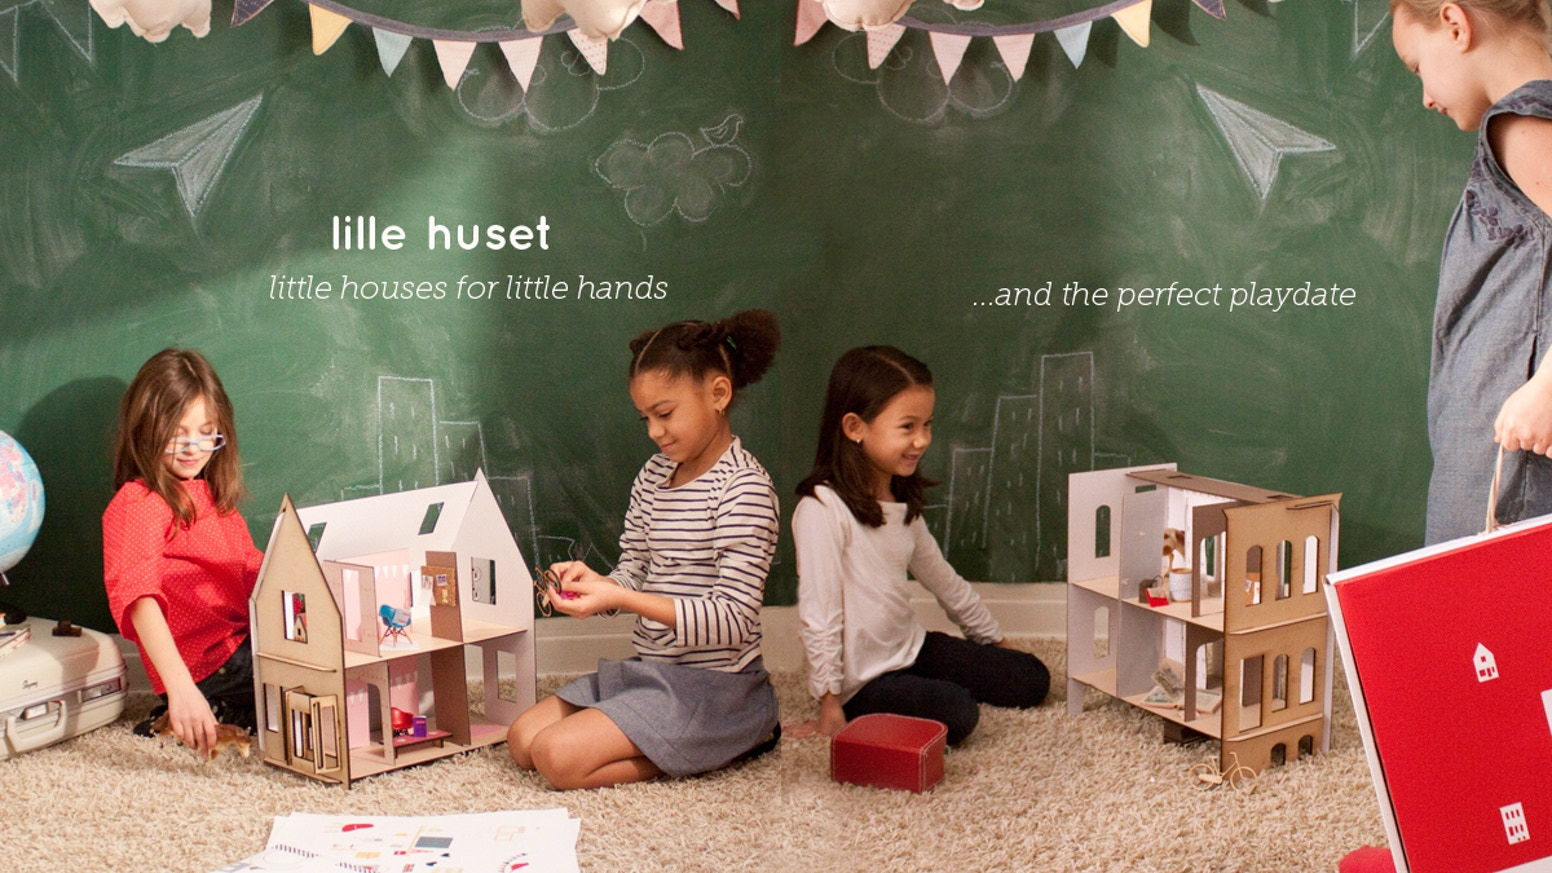 lille huset by Alyson Beaton » Yes even we have a 3D model